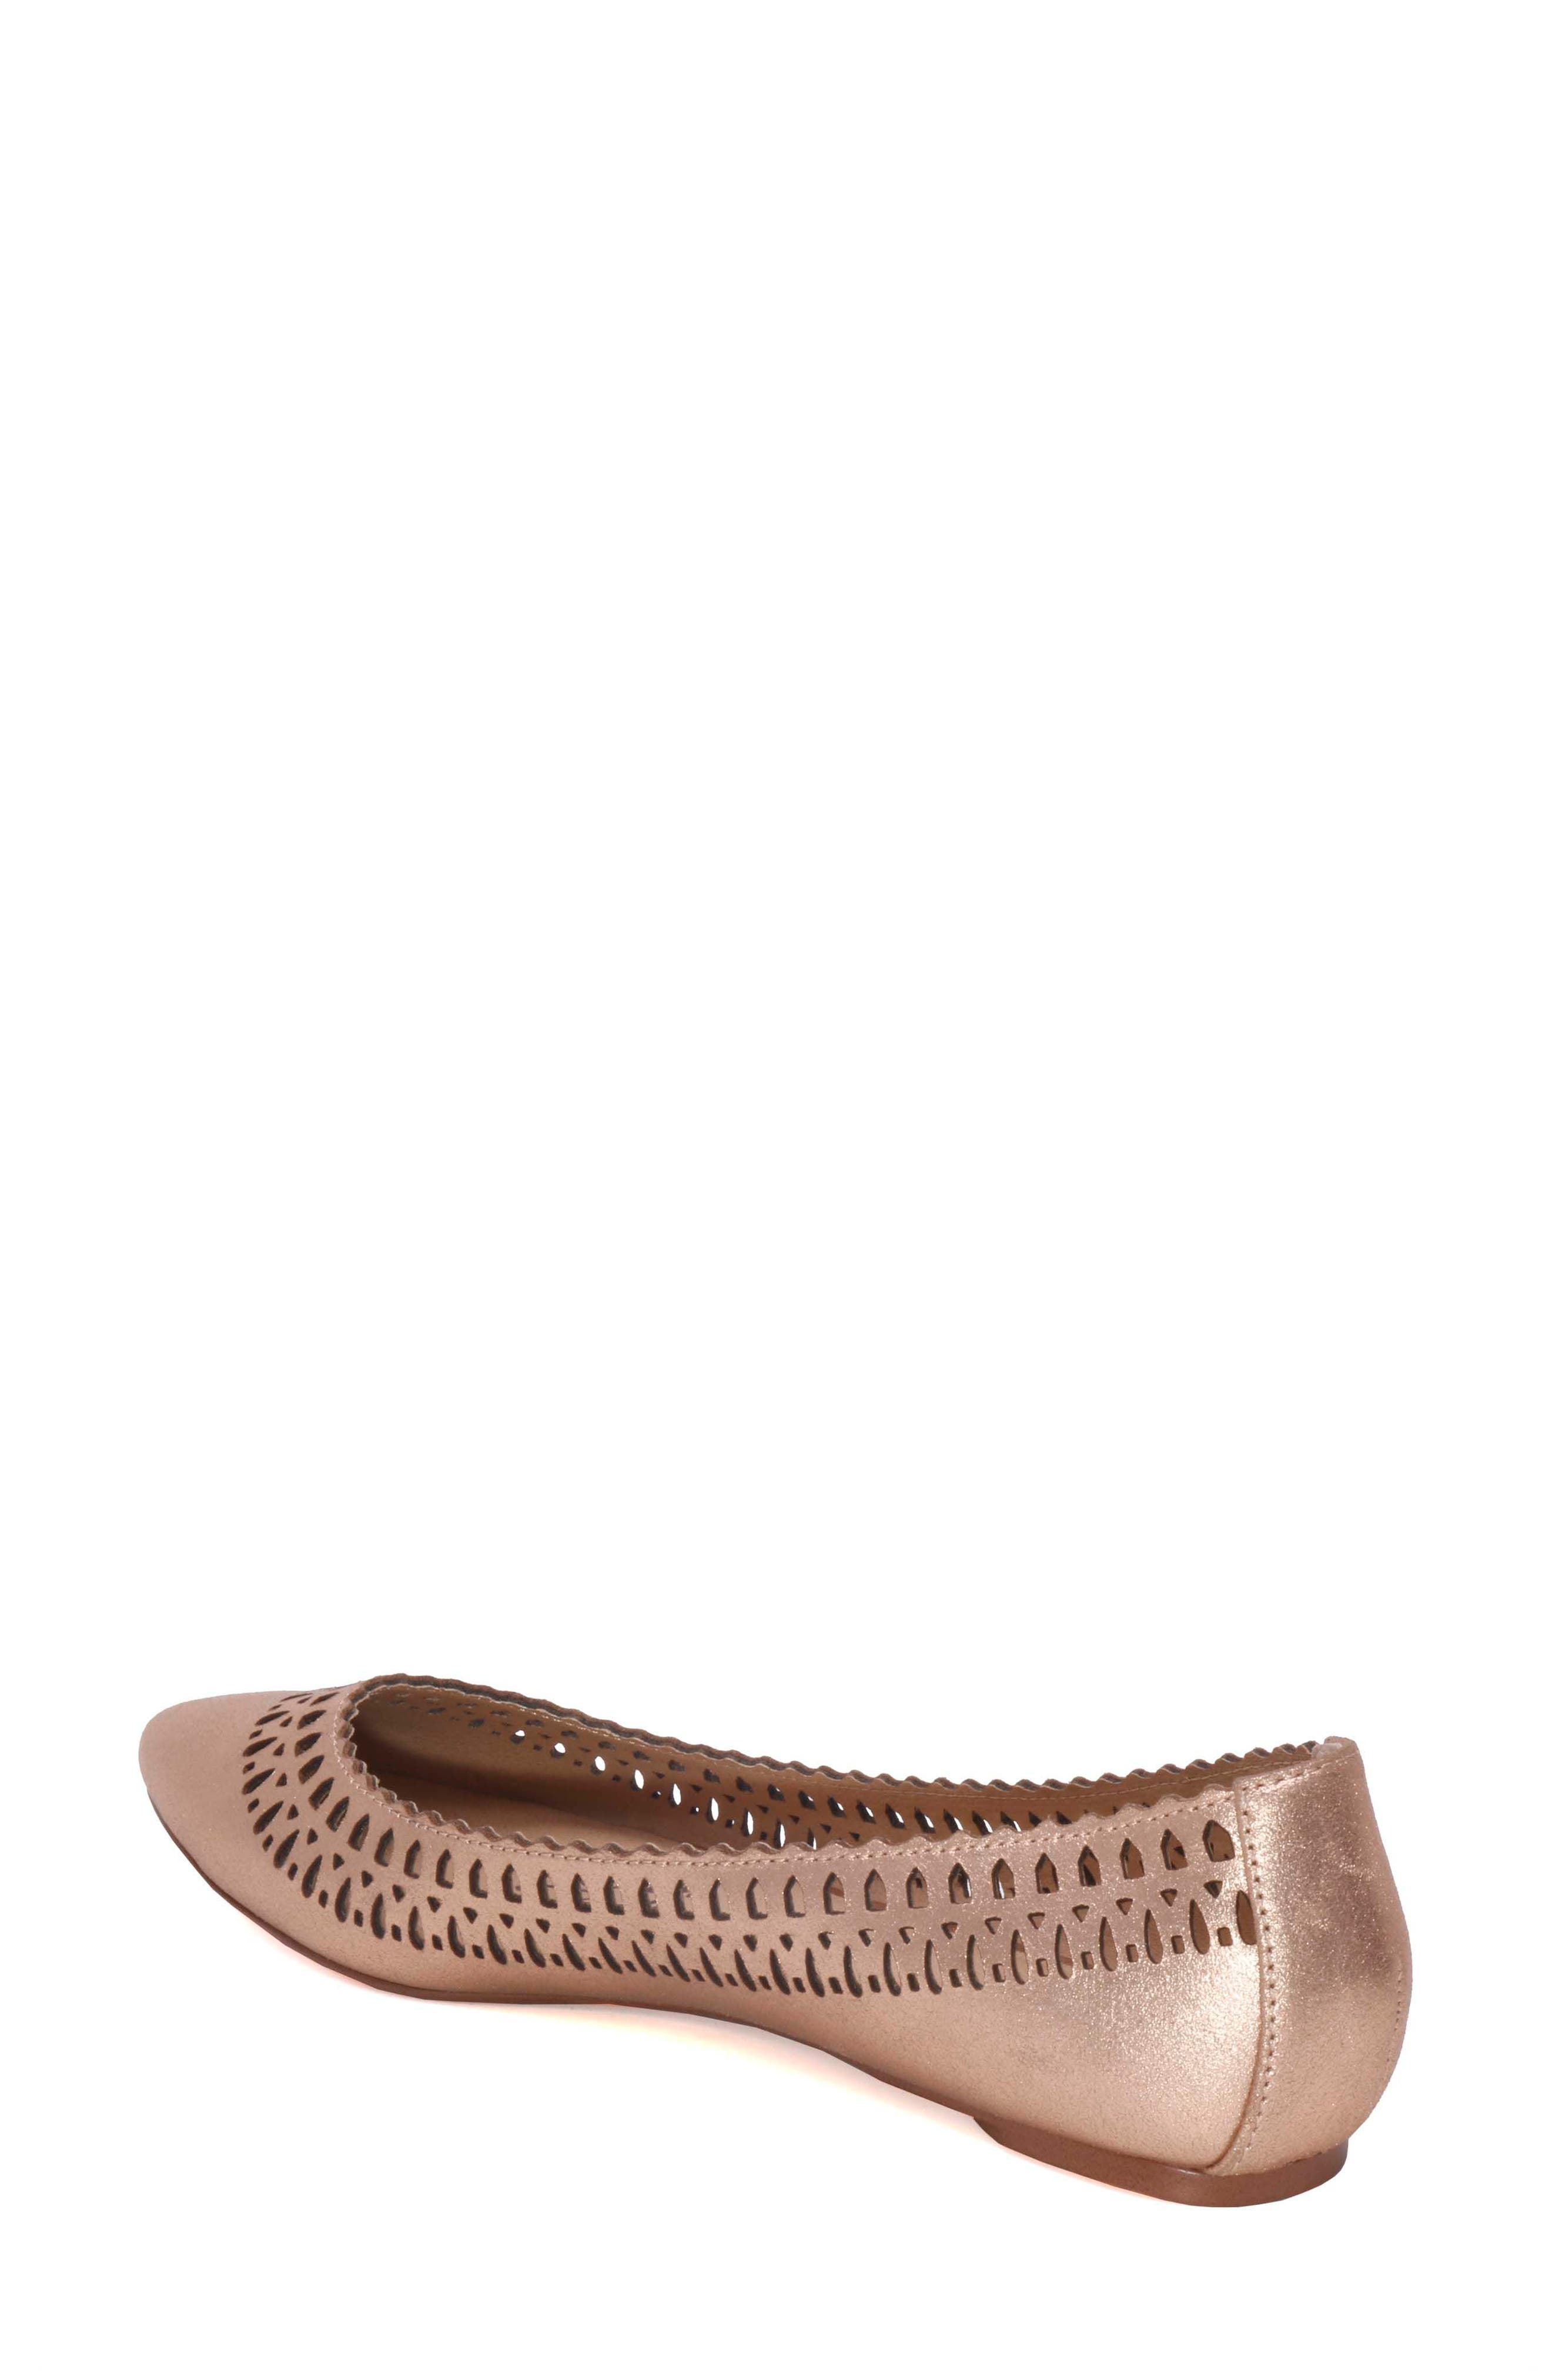 Cora Flat,                             Alternate thumbnail 2, color,                             Rose Gold Leather